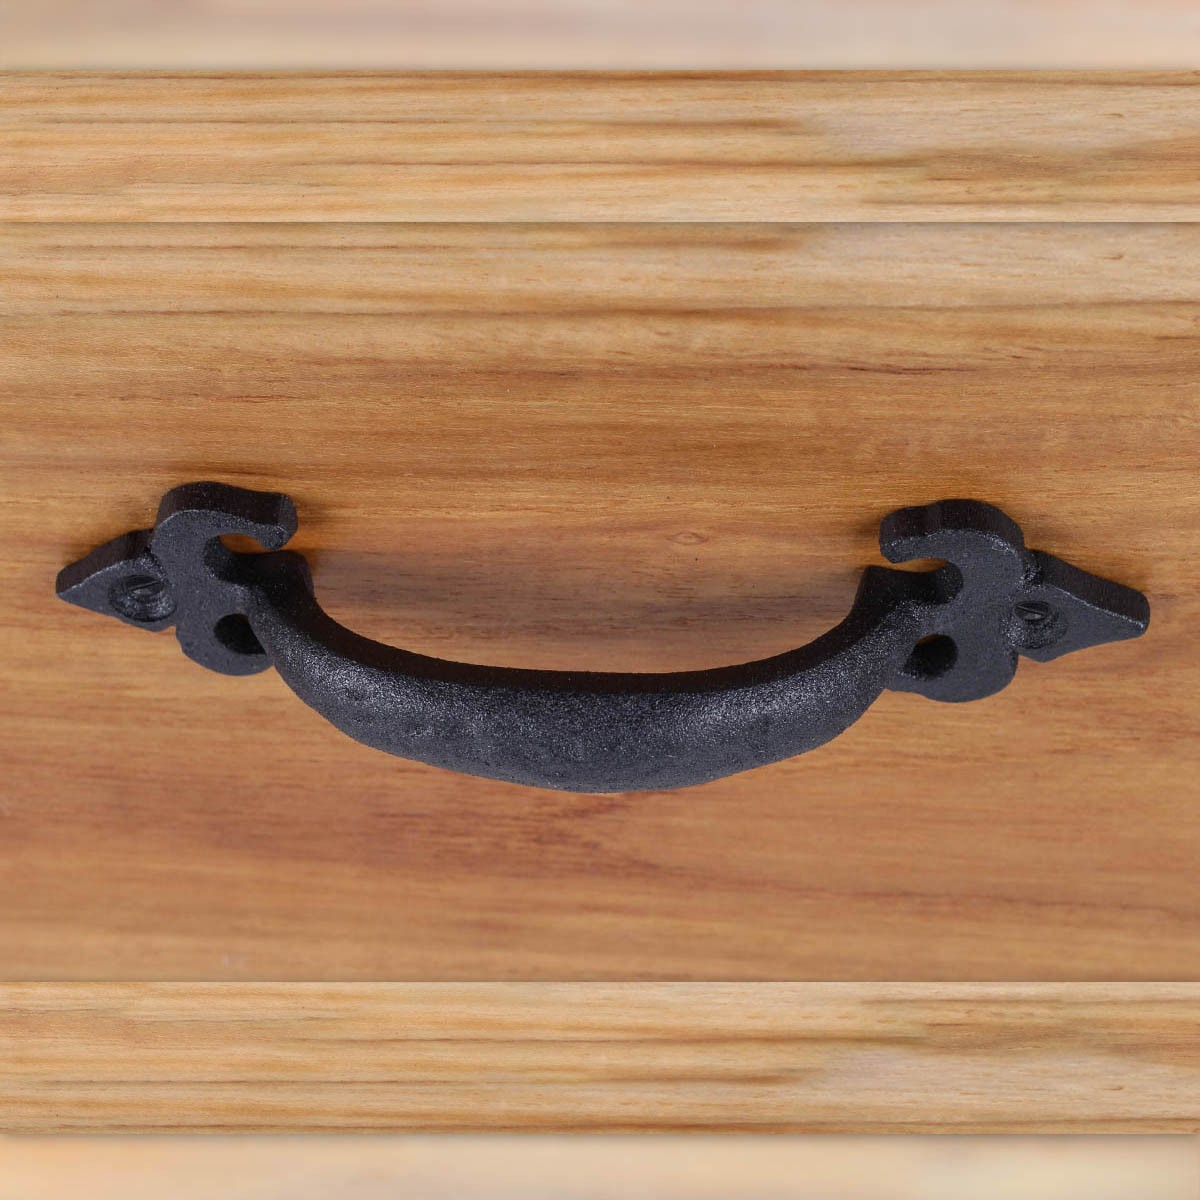 Iron Cabinet Pulls Hand Forged Drawer Pulls Black 6 Black Antique Rustic Cabinet Pull Black Cabinet Handle Pull Small Drawer Pull